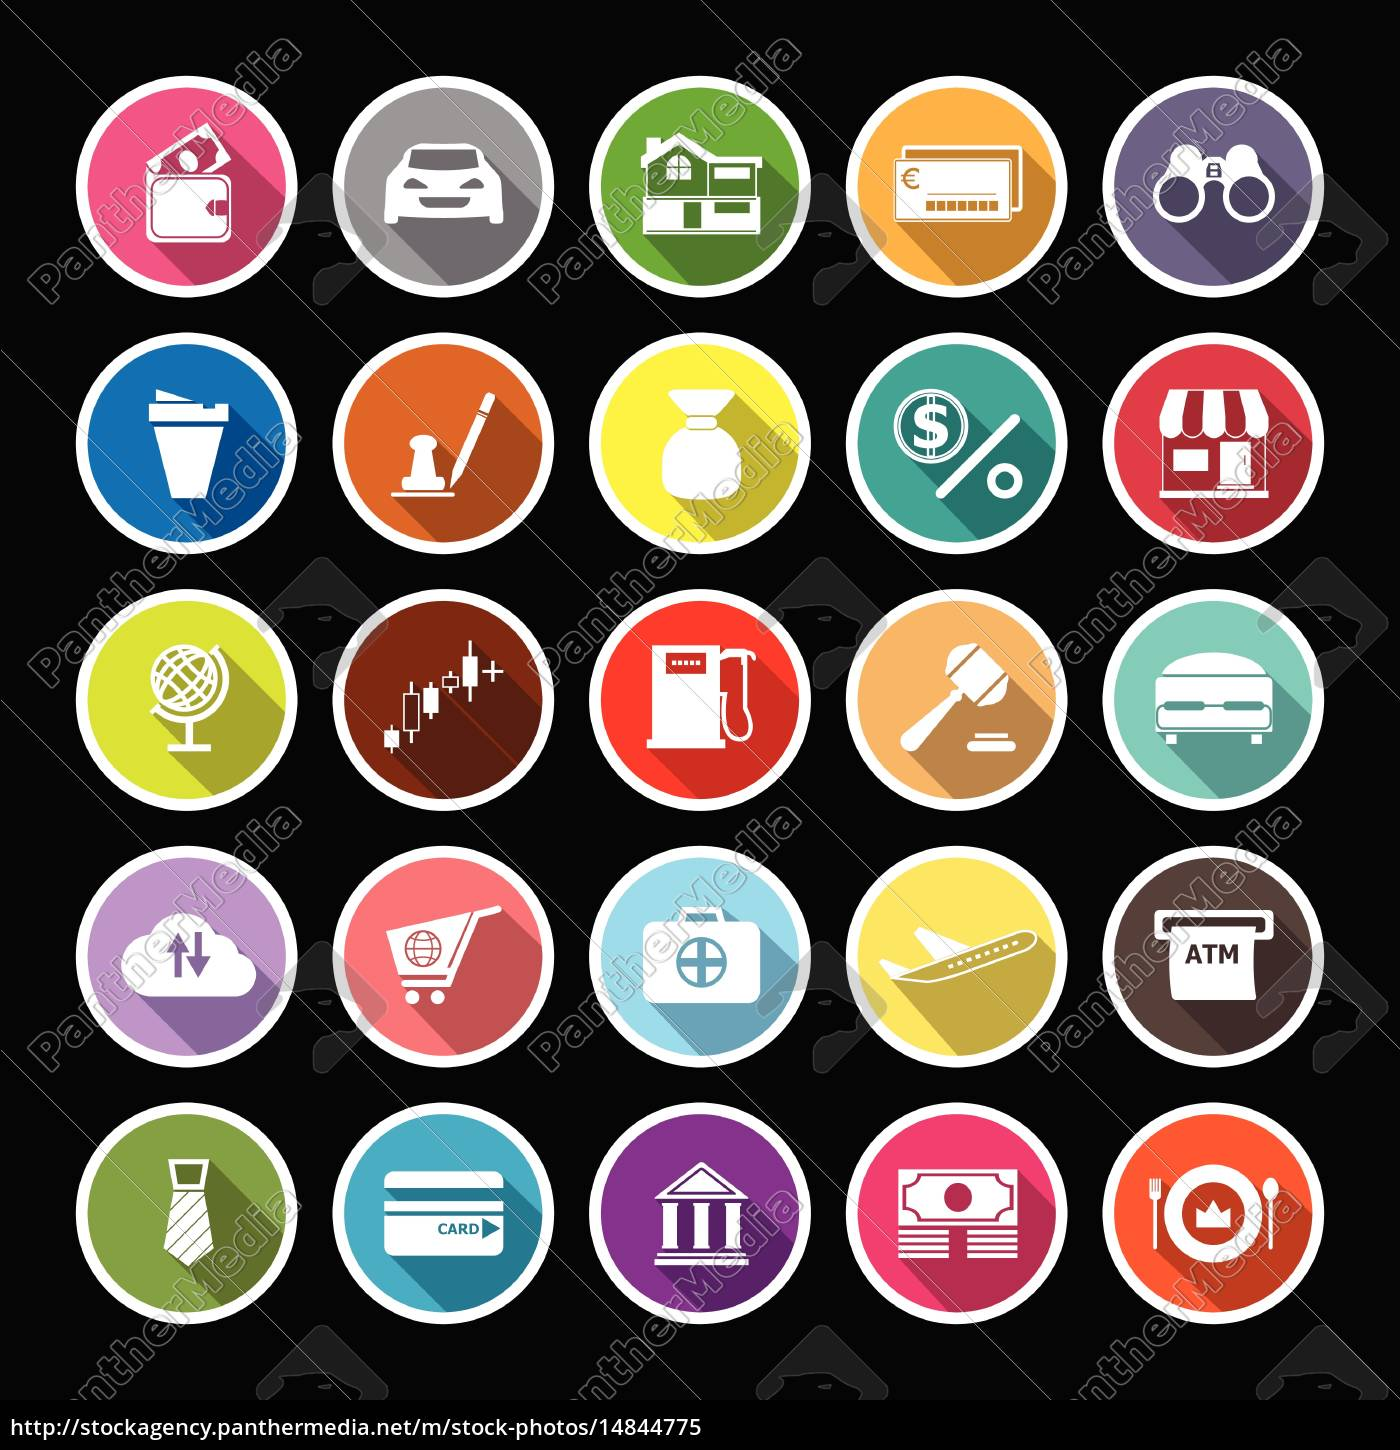 e, wallet, flat, icons, with, long - 14844775